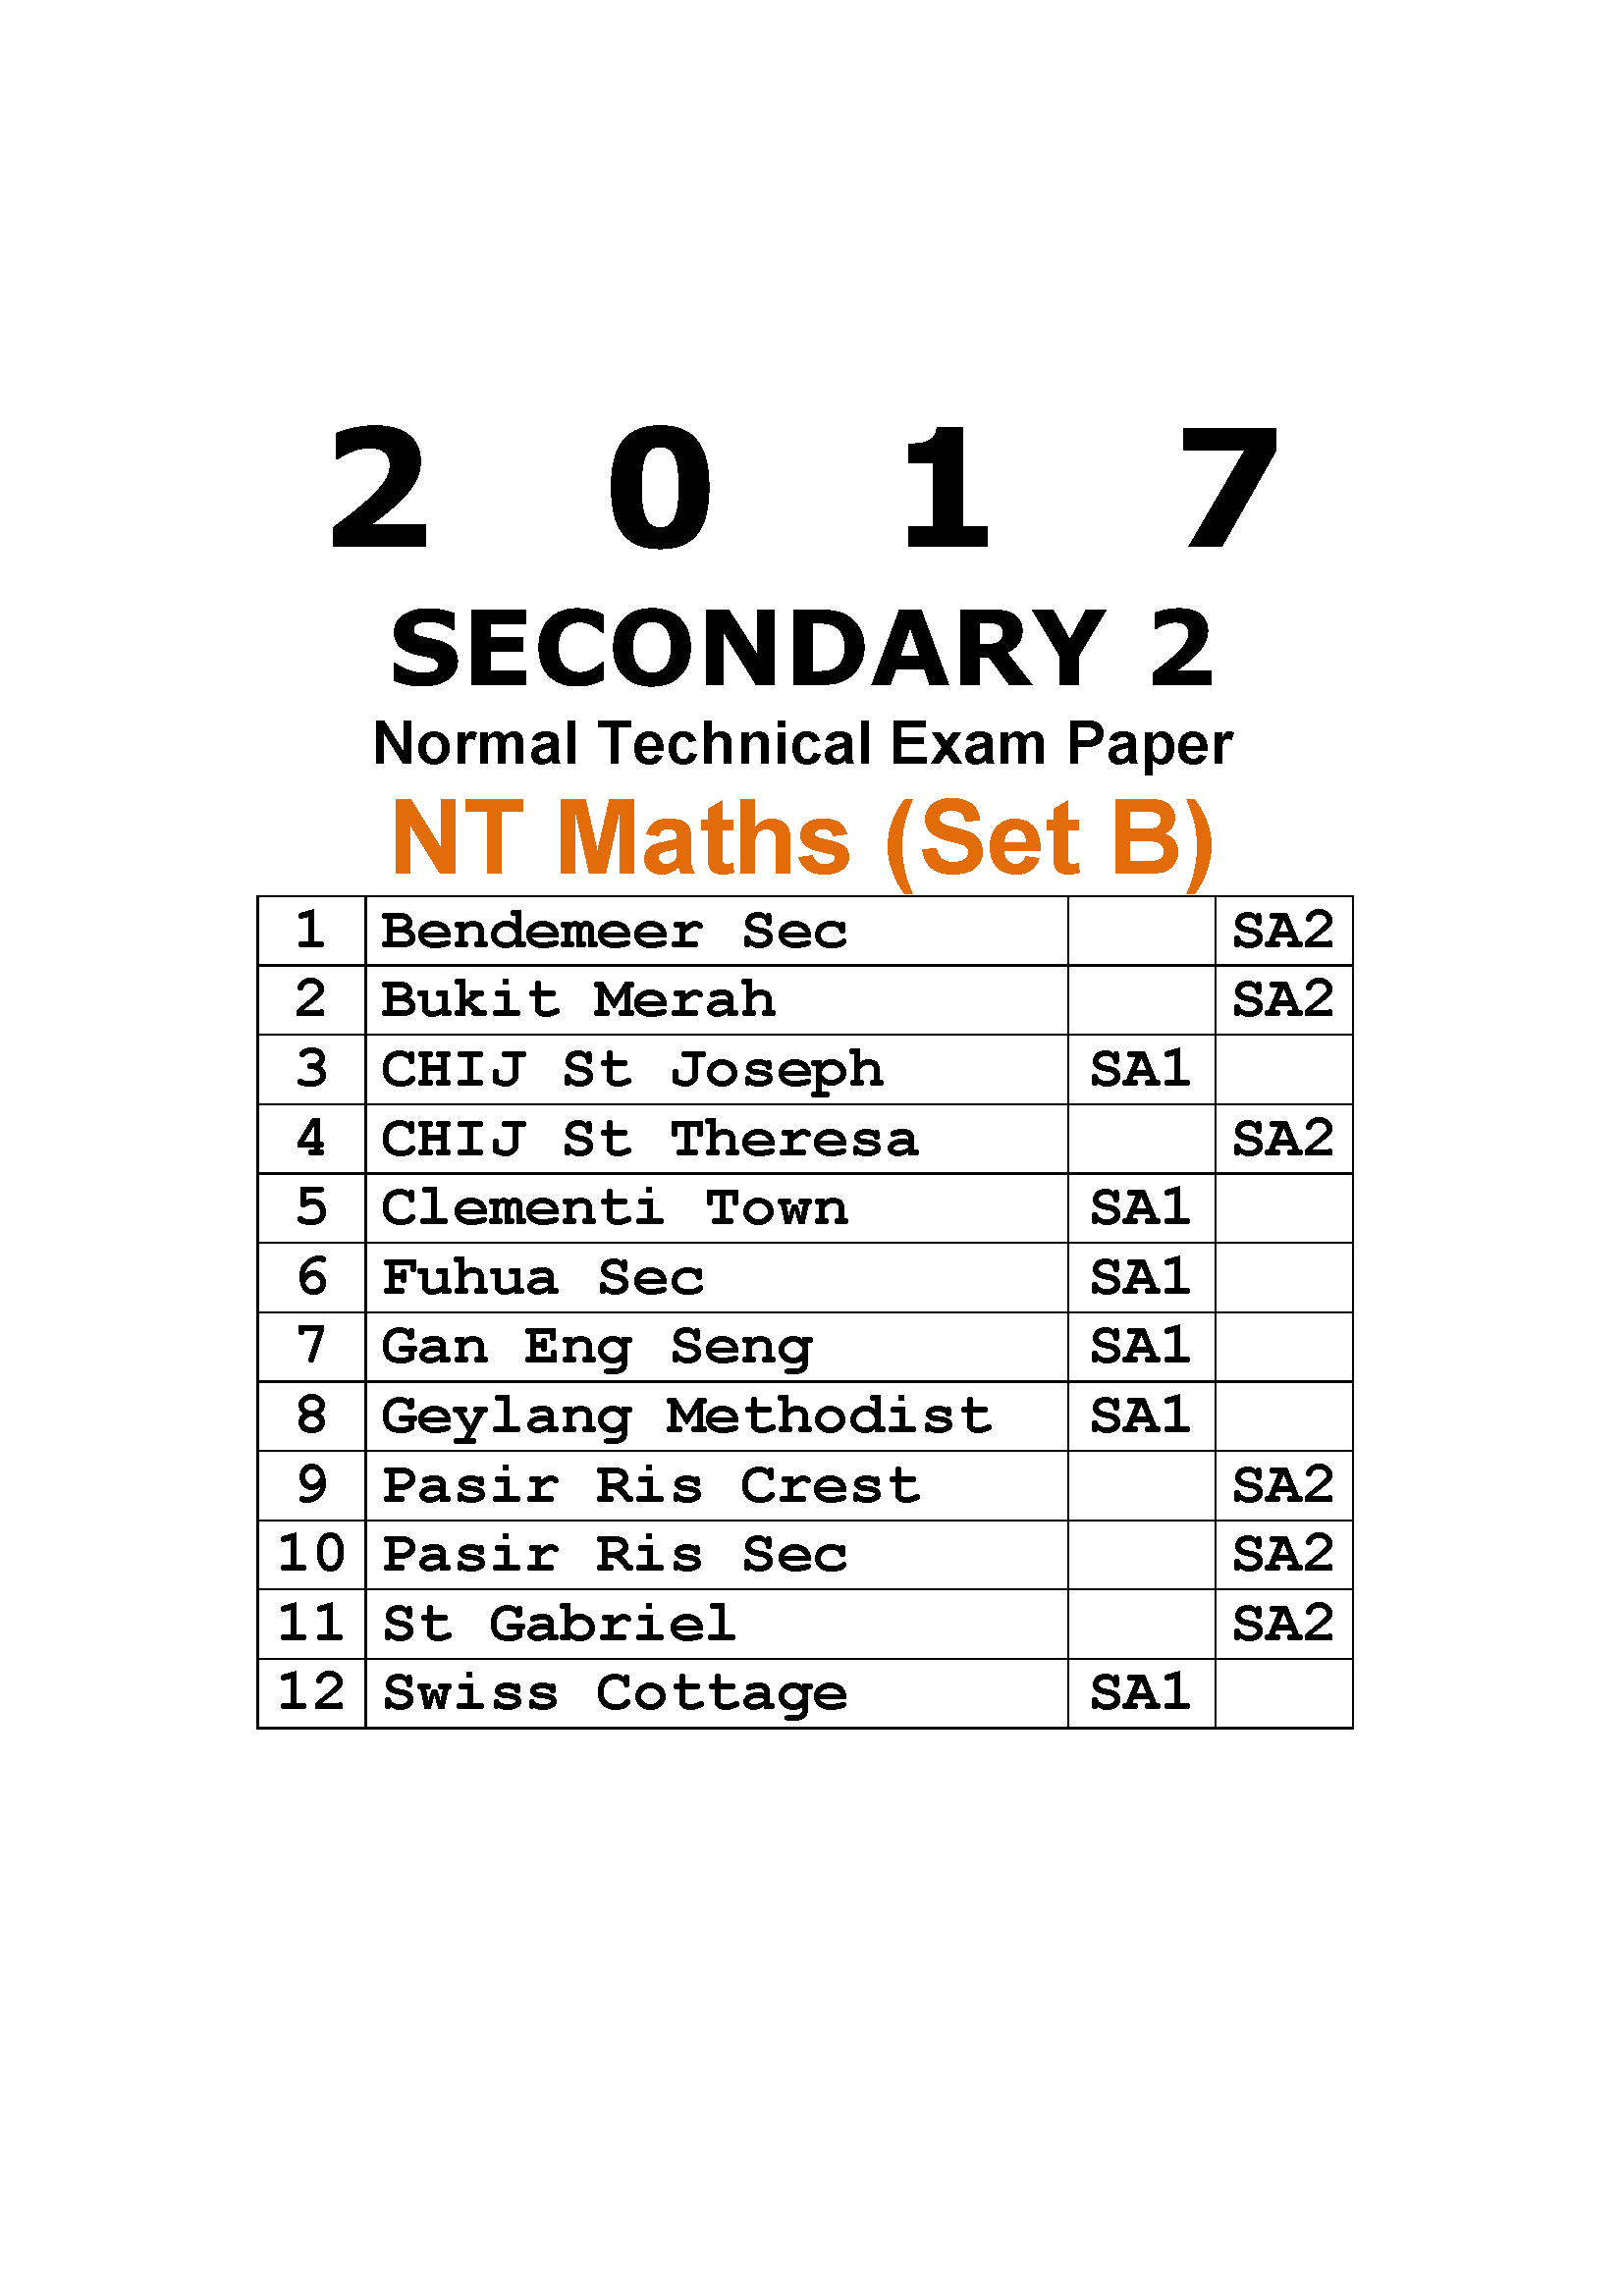 2017 Secondary 2 Normal Technical (NT) Maths Exam Paper